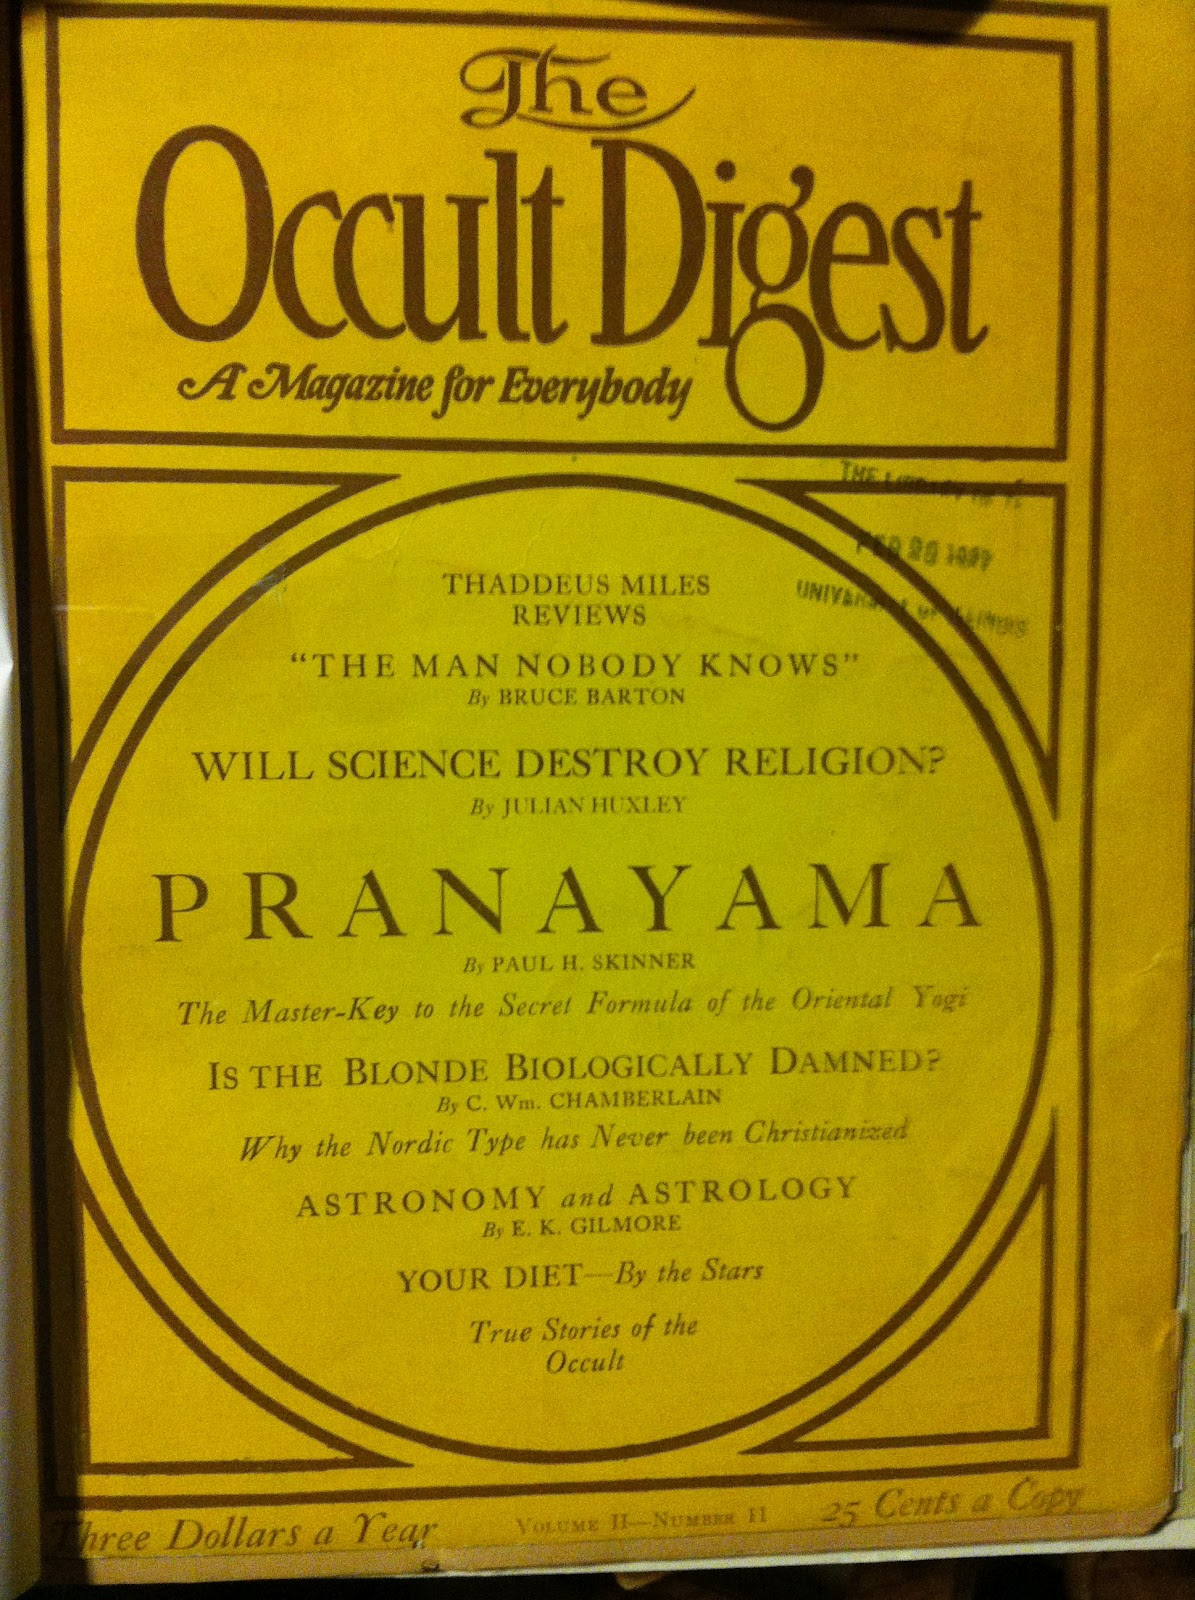 Occult Chicago: The Occult Digest